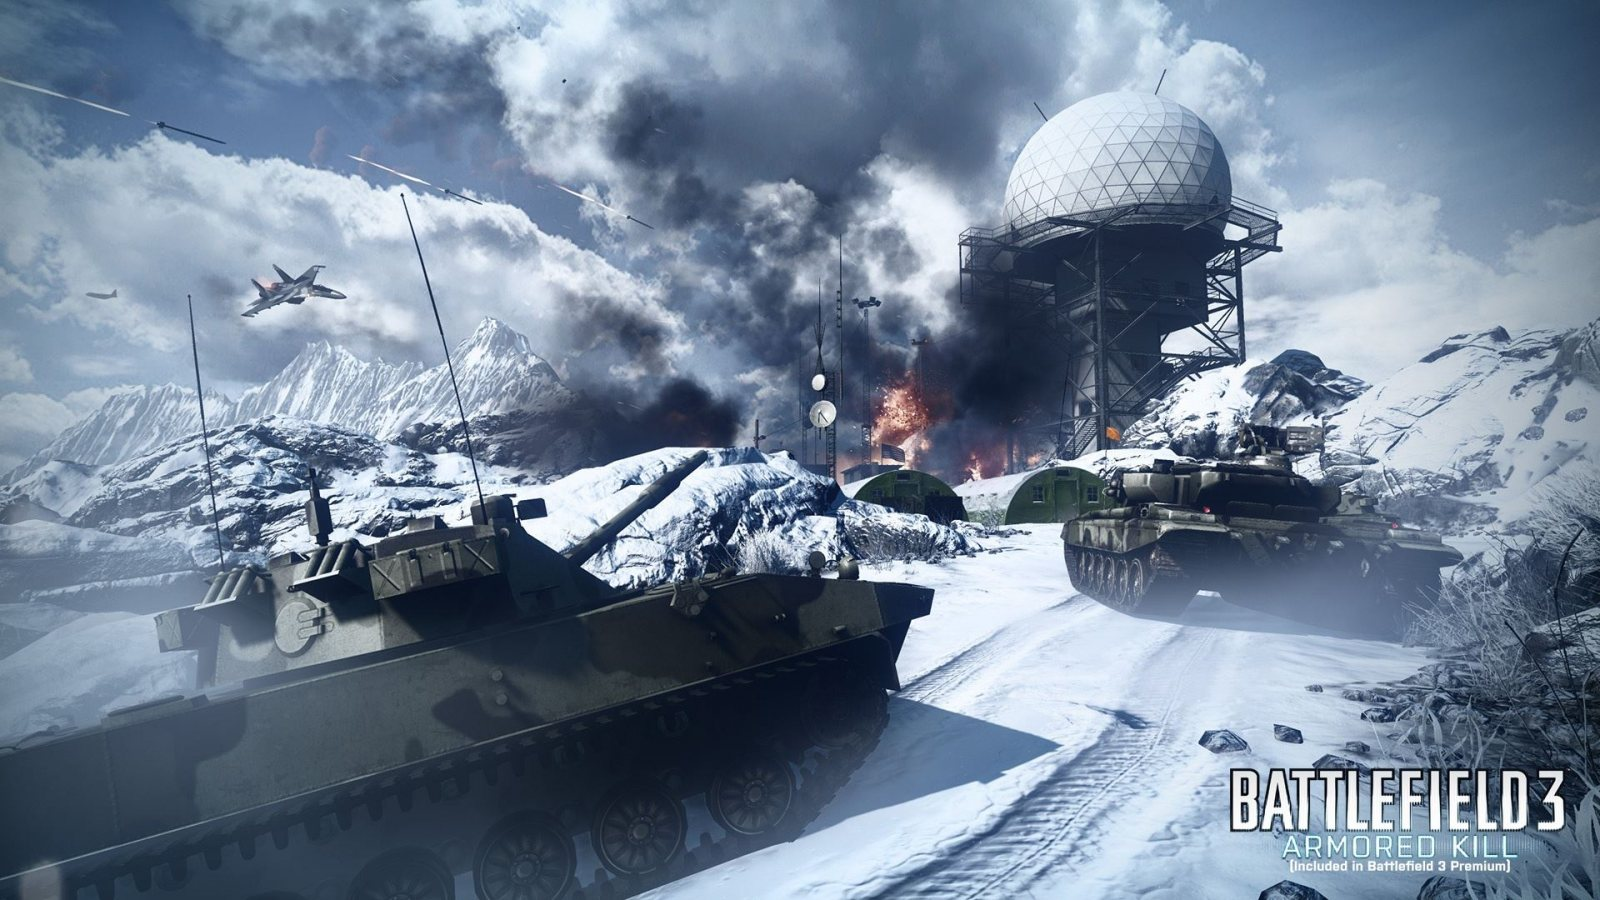 battlefield 3 armored kill wallpapers - 3 Battlefield 3 Armored Kill HD Wallpapers Backgrounds